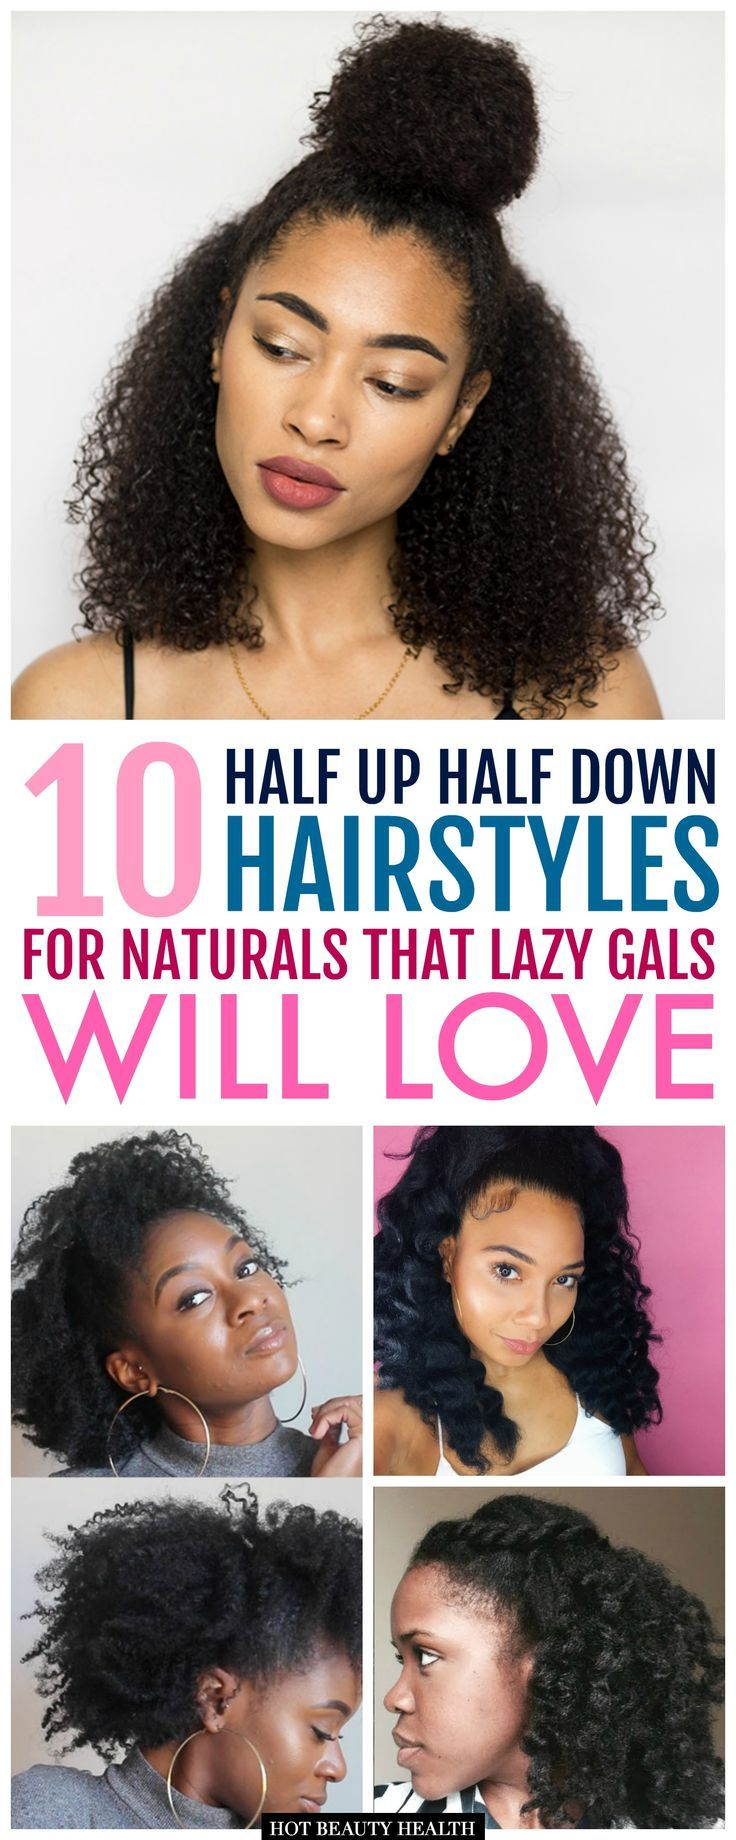 10 easy half up half down hairstyles for black women. African Americans sportin' their natural hair will love these quick and easy styles from half up half down hair with a top knot, braids, straight hair, updo, twists, and curls. Great casual styles for everyday. If you have short, medium length or long hair (with or without extensions), click pin for the list of step by step tutorials! Hot Beauty Health #hairtutorials #easyhairstyles